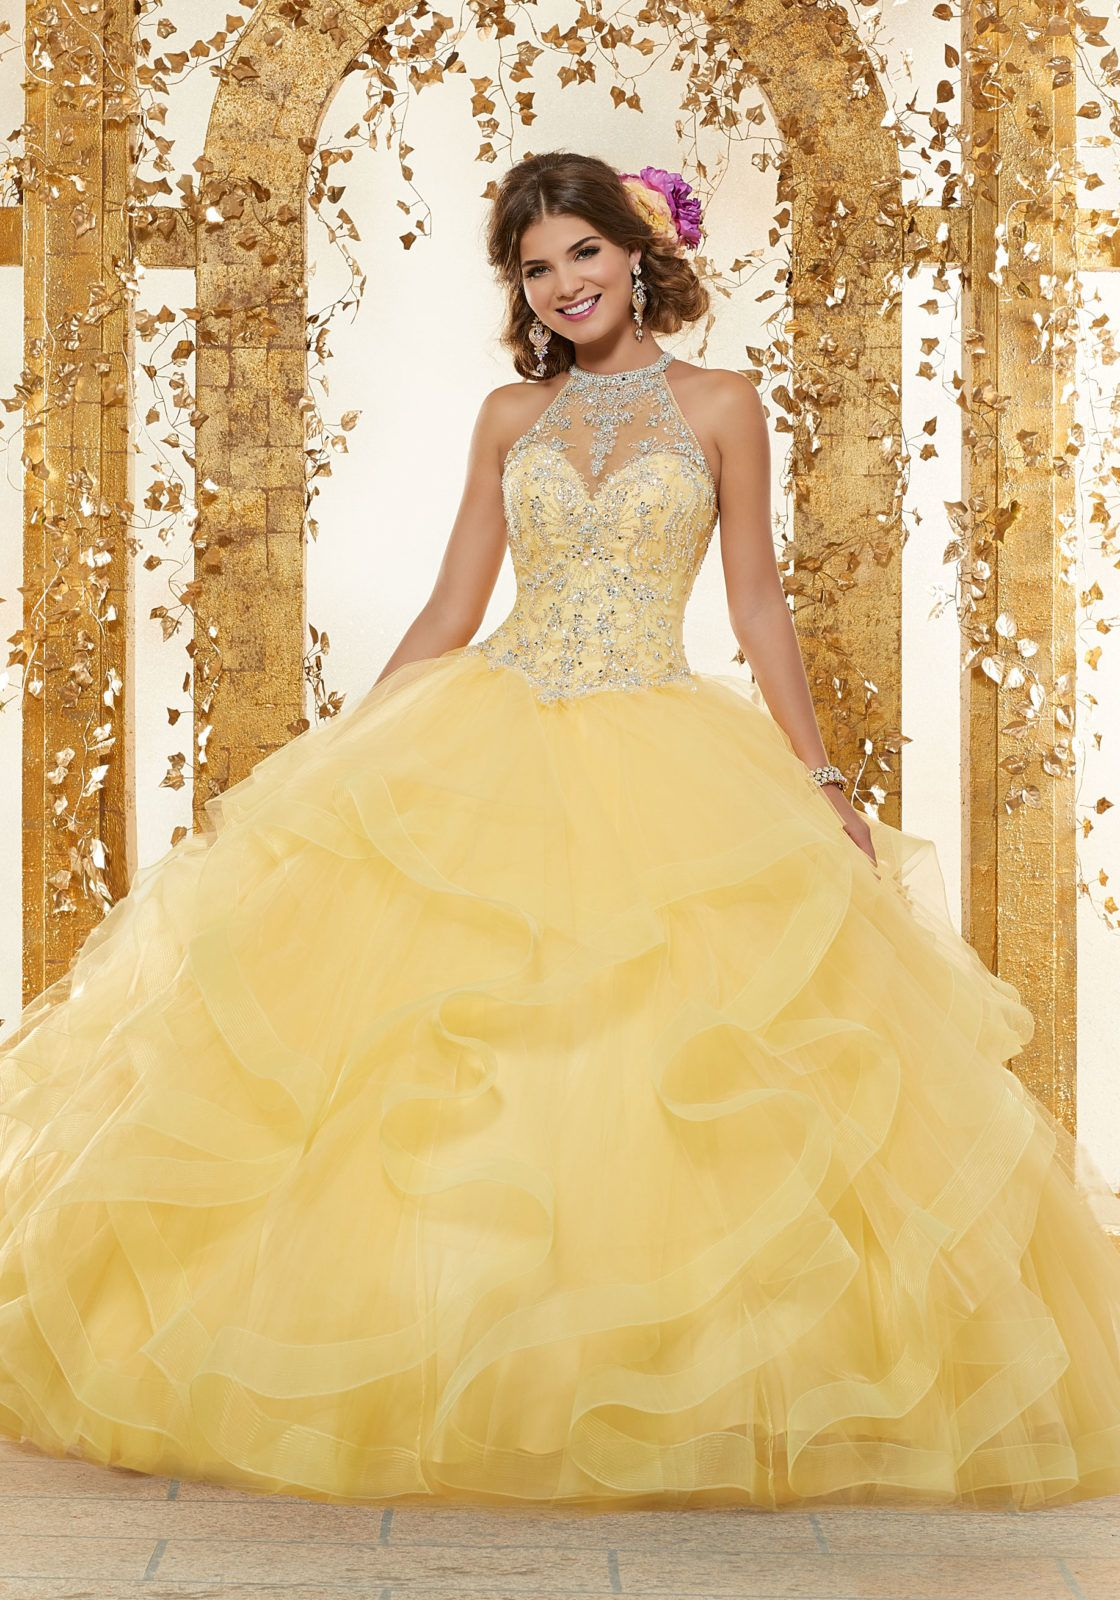 371c2711bd Rhinestone and Crystal Beading on a Flounced Tulle Ballgown ...